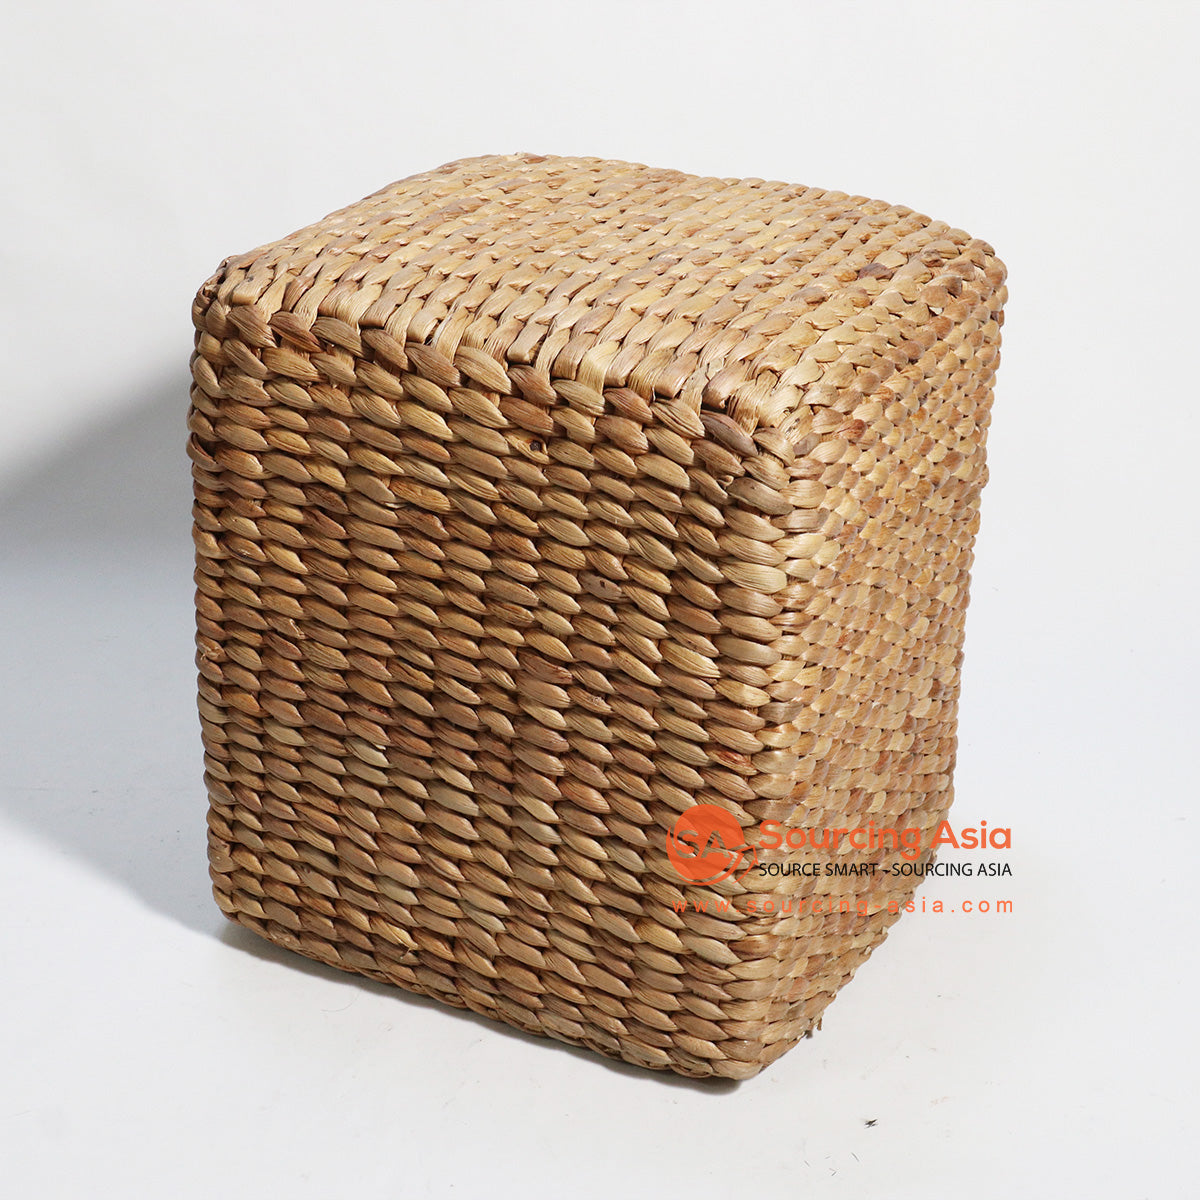 HBSC149 SQUARE WATER HYACINTH STOOL